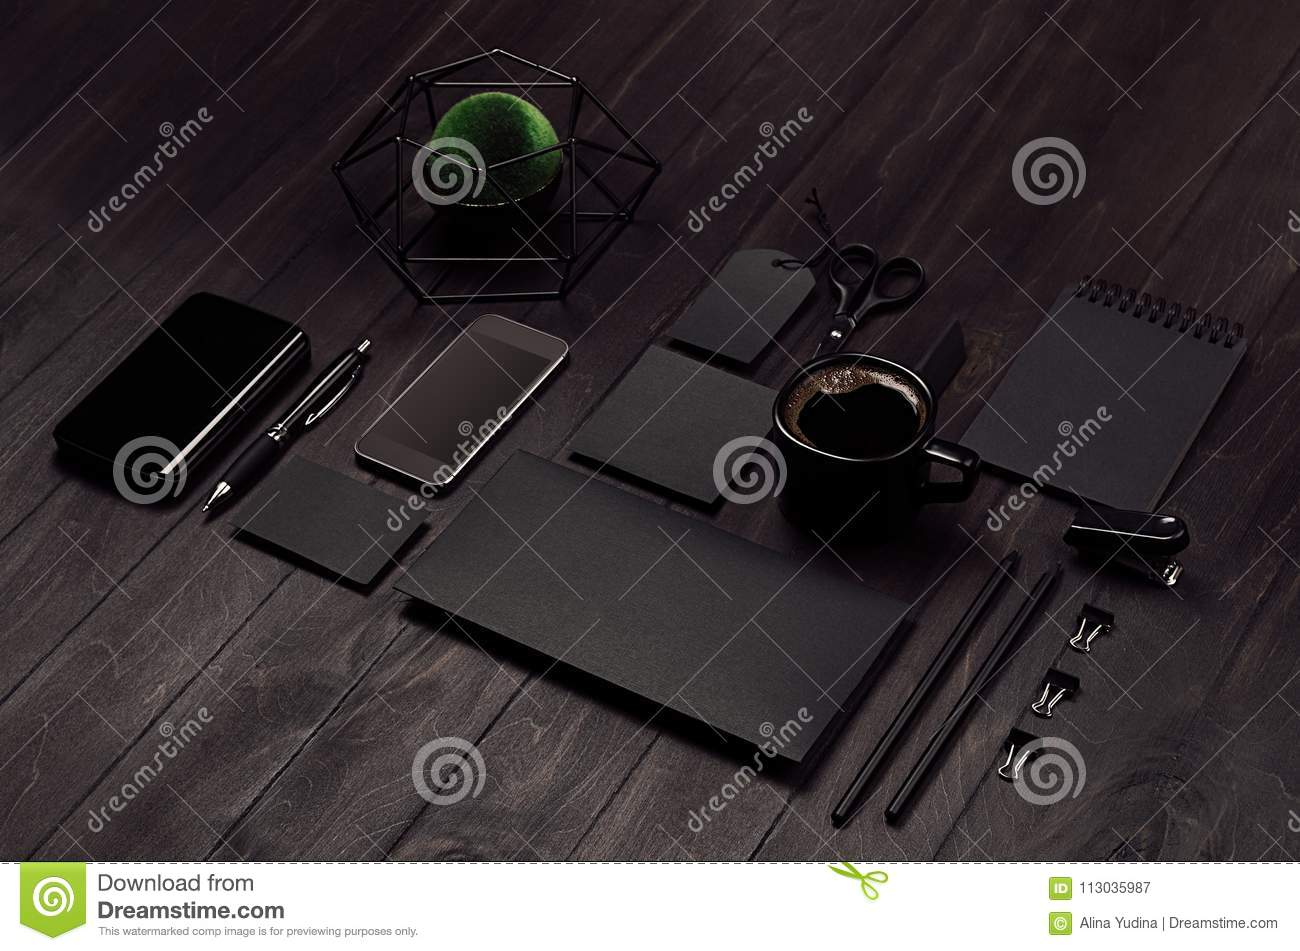 Modern stylish working place with blank black stationery, phone, coffee, green plant on dark wood board, inclined.